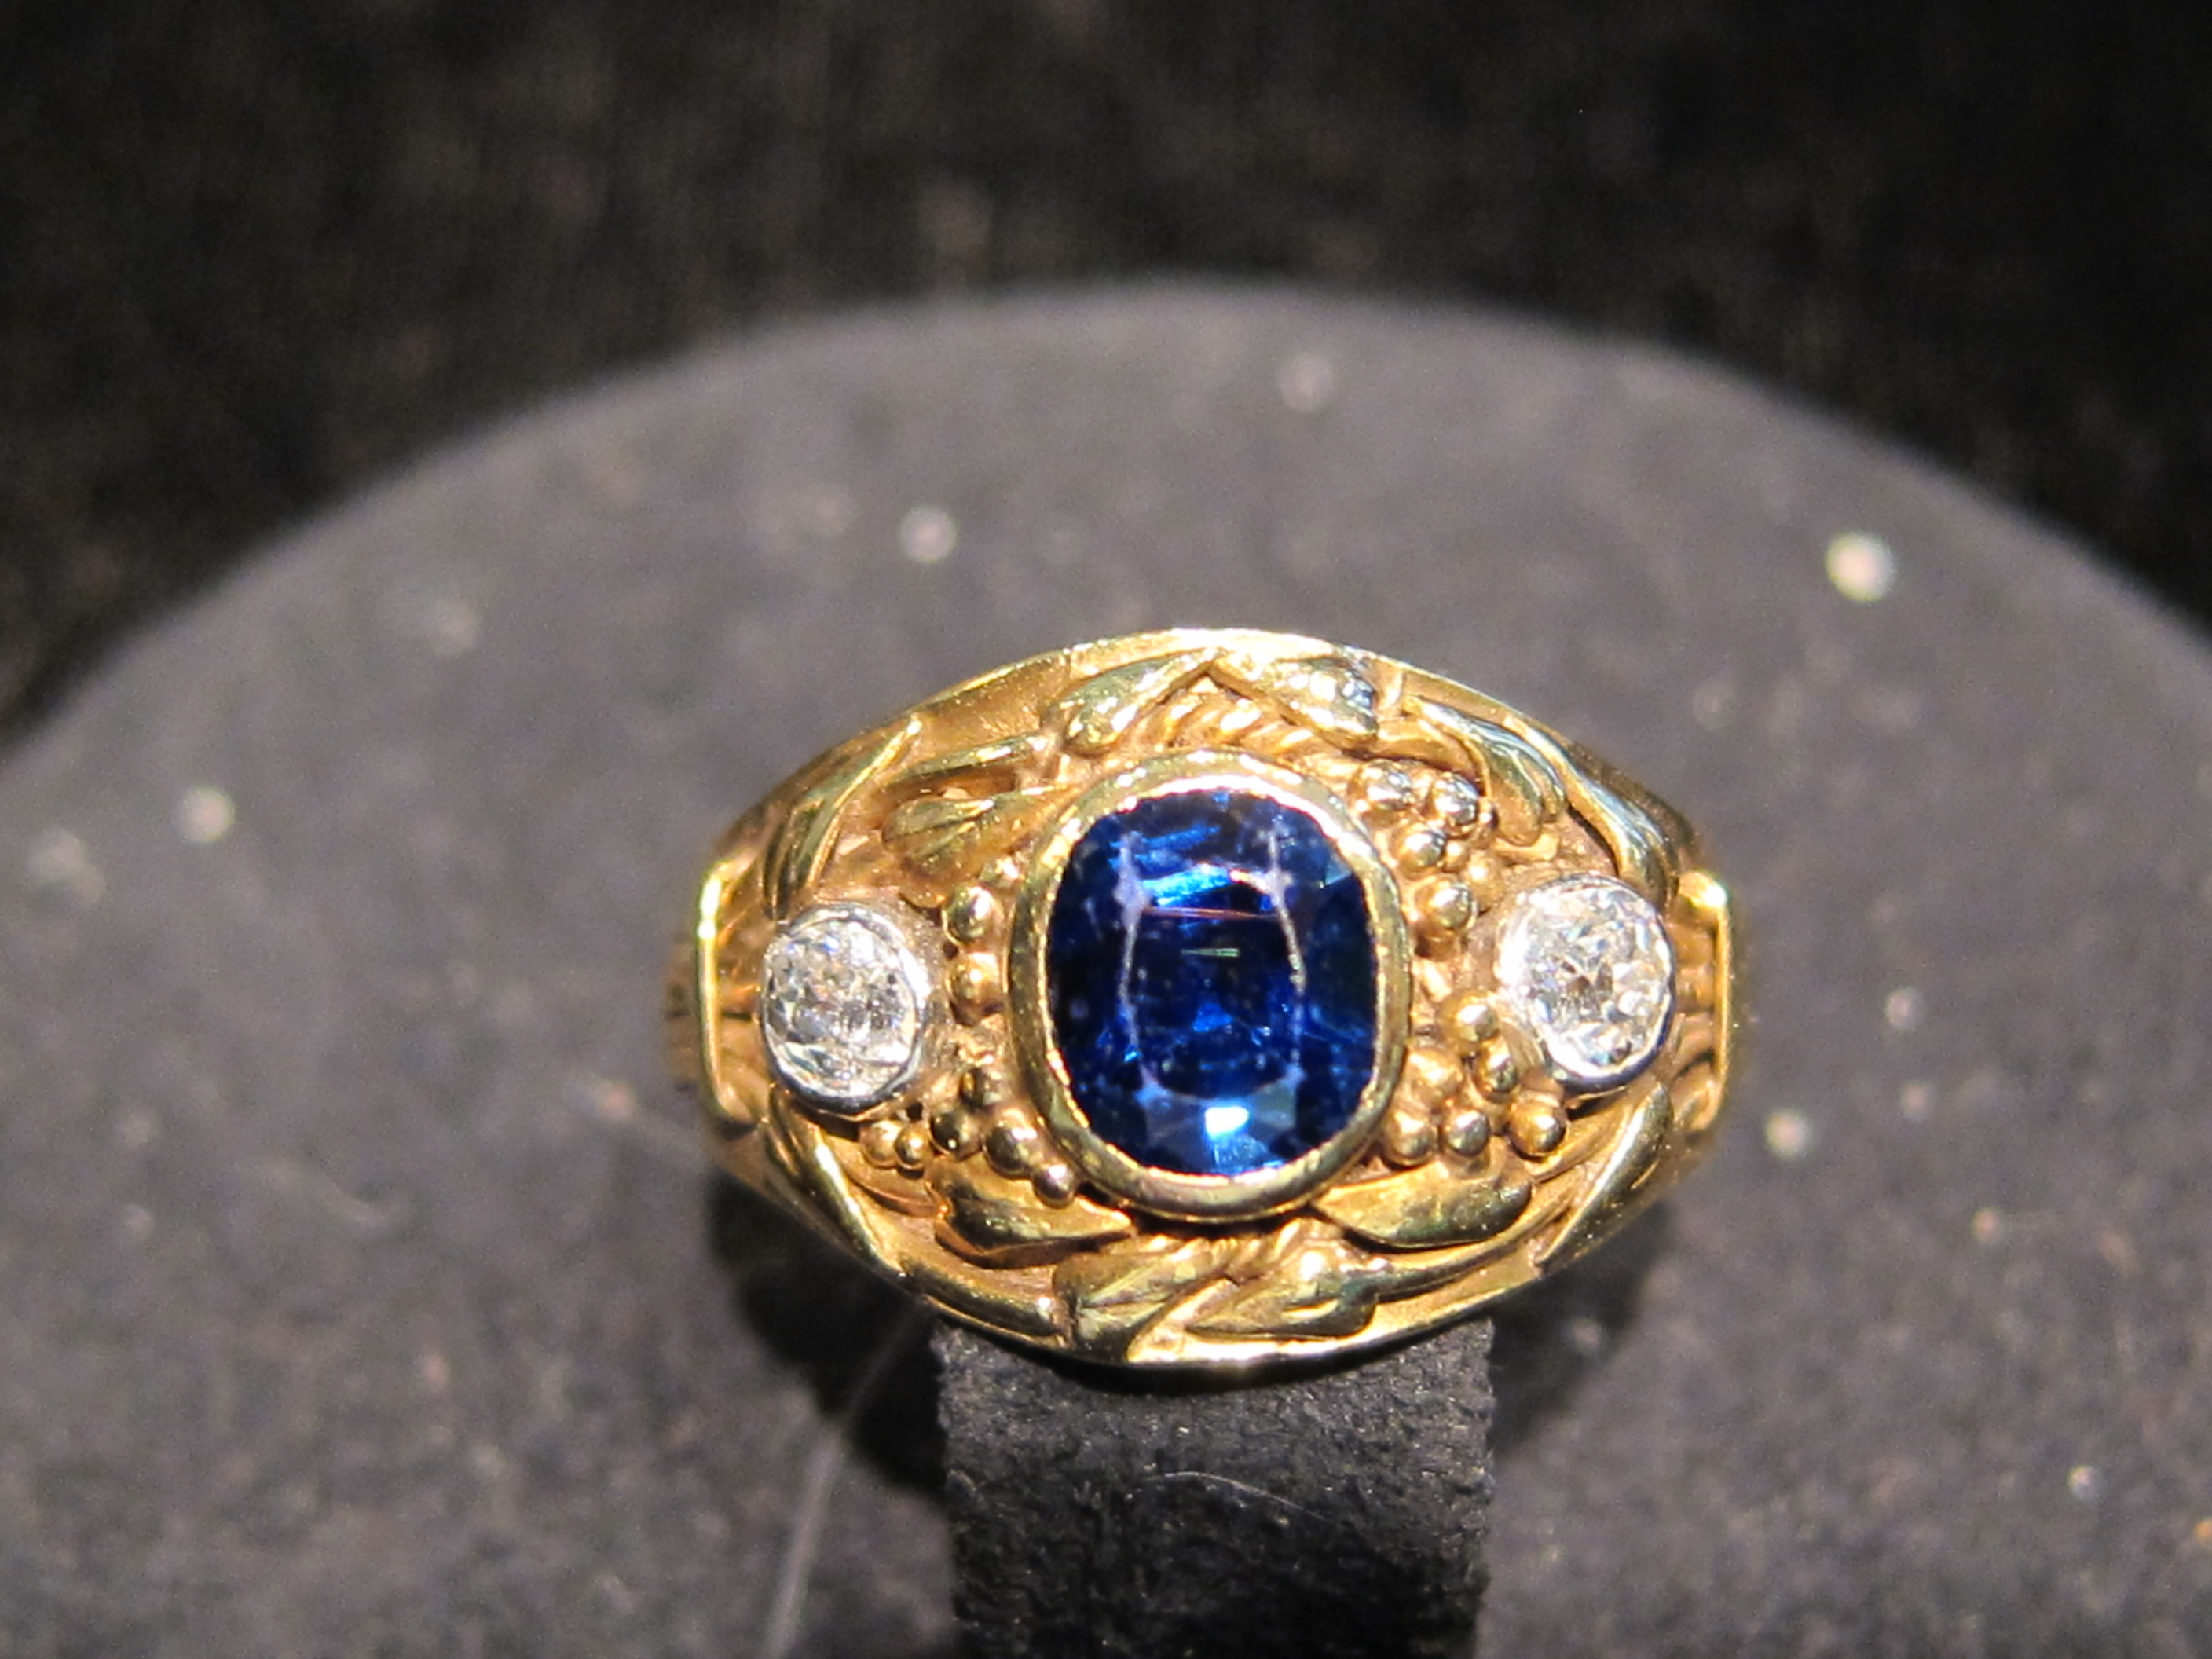 American 18kt. Yellow Gold & Sapphire ring c1890